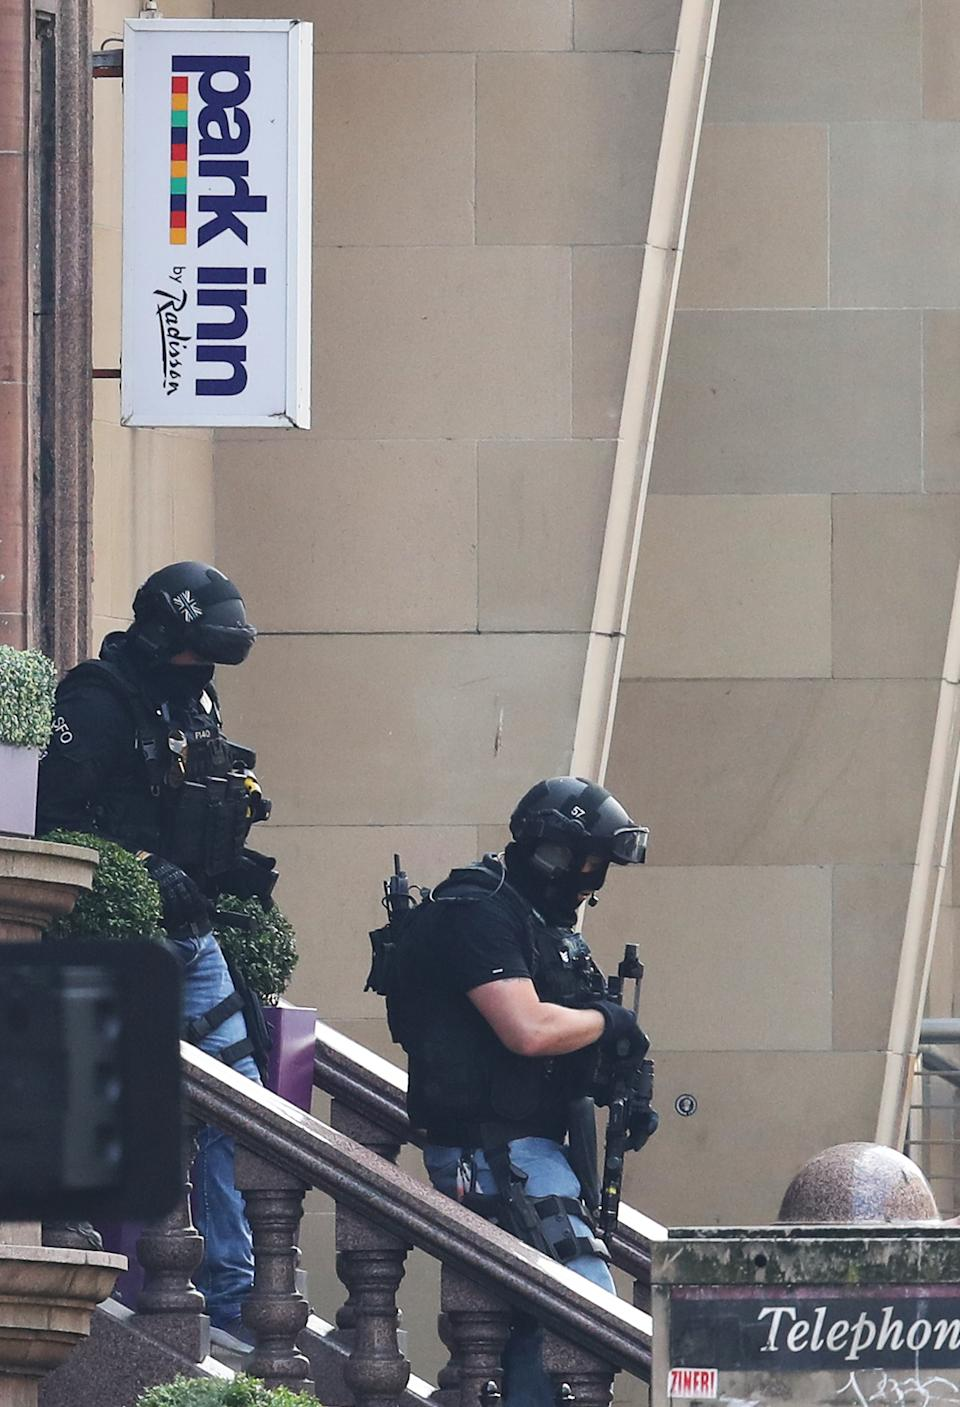 Armed police officers leave the Park Inn hotel in West George Street, Glasgow, after a suspect male was shot by an armed officer. (PA)